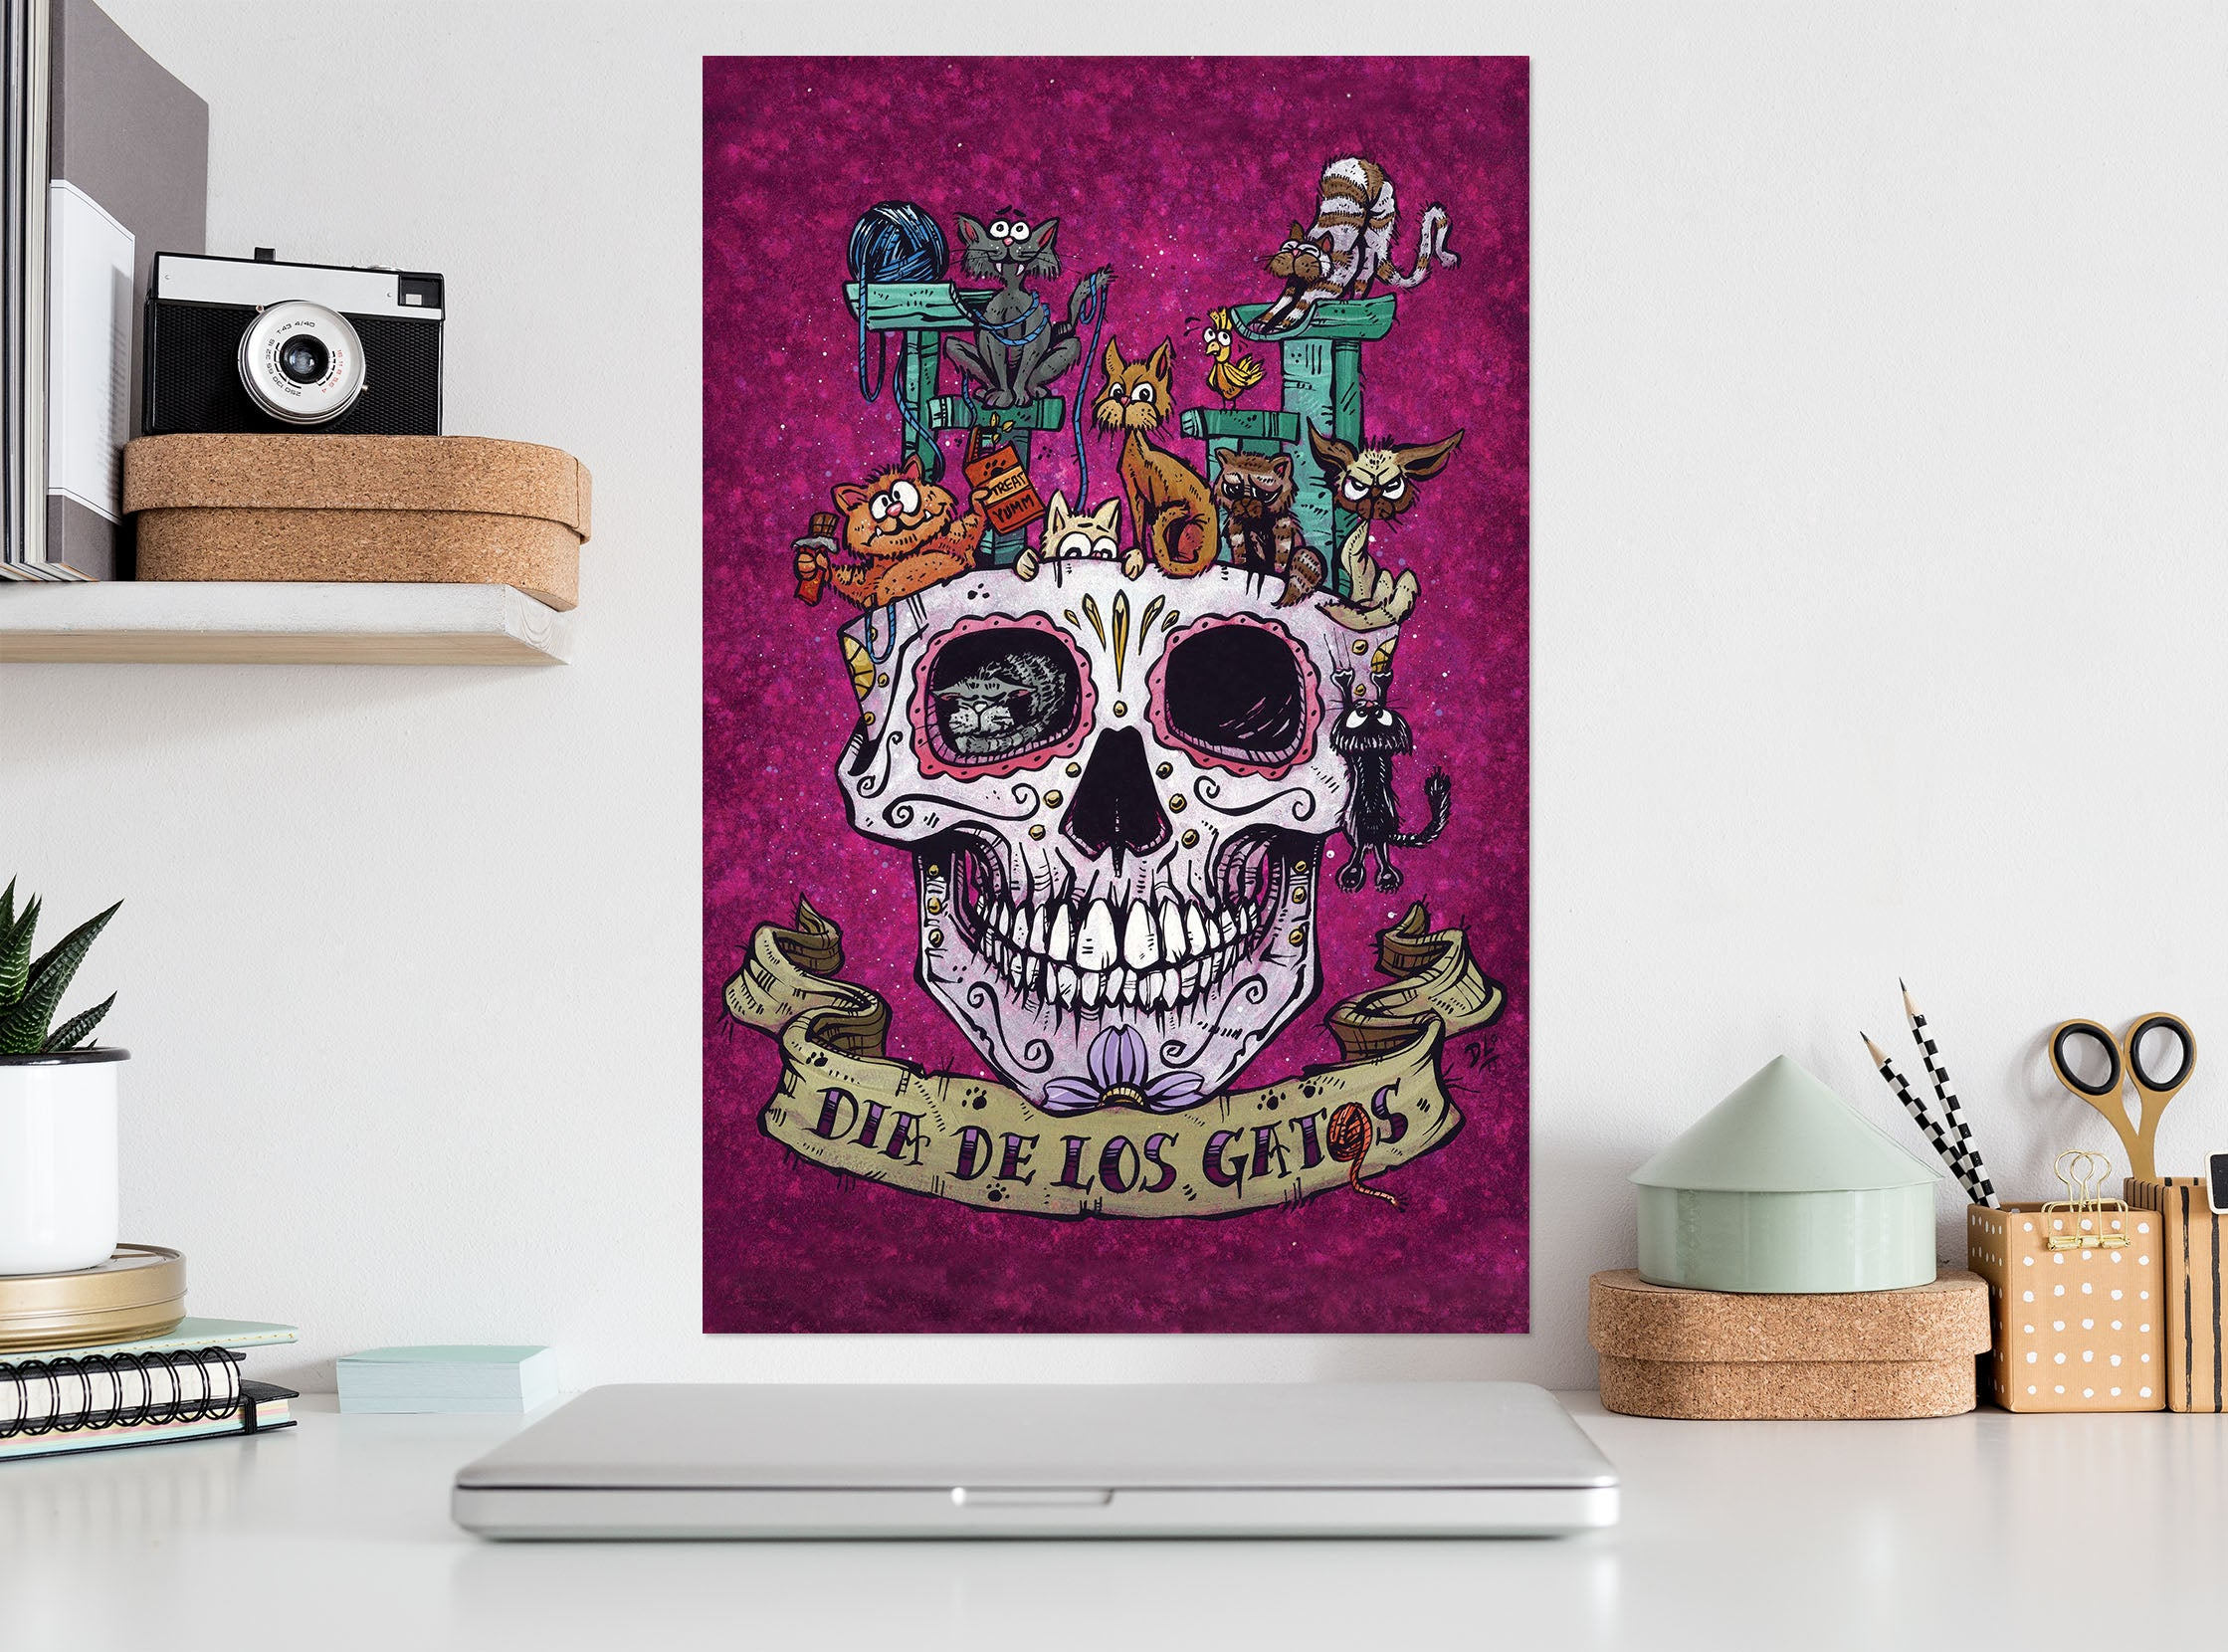 3D Skull Pot 208 David Lozeau Wall Sticker